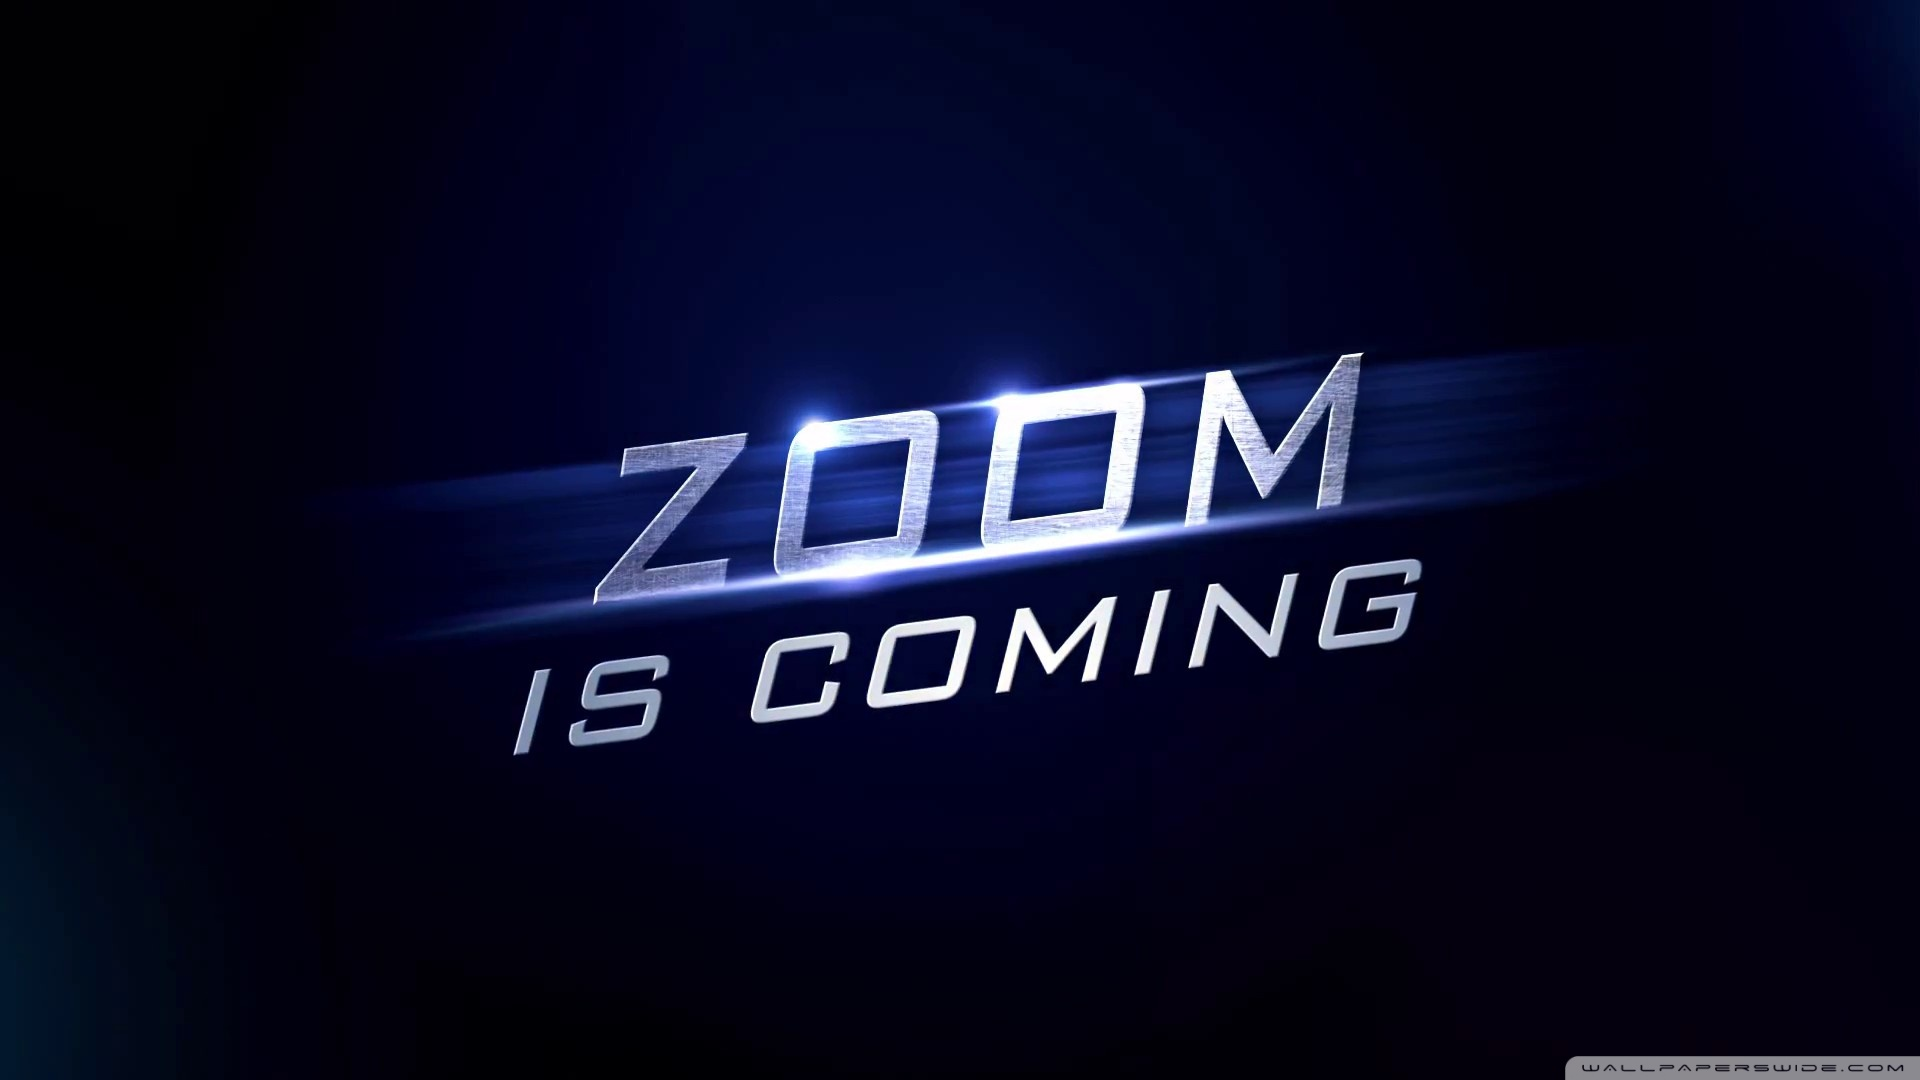 Free Download The Flash Cw Zoom Is Coming 4k Hd Desktop Wallpaper